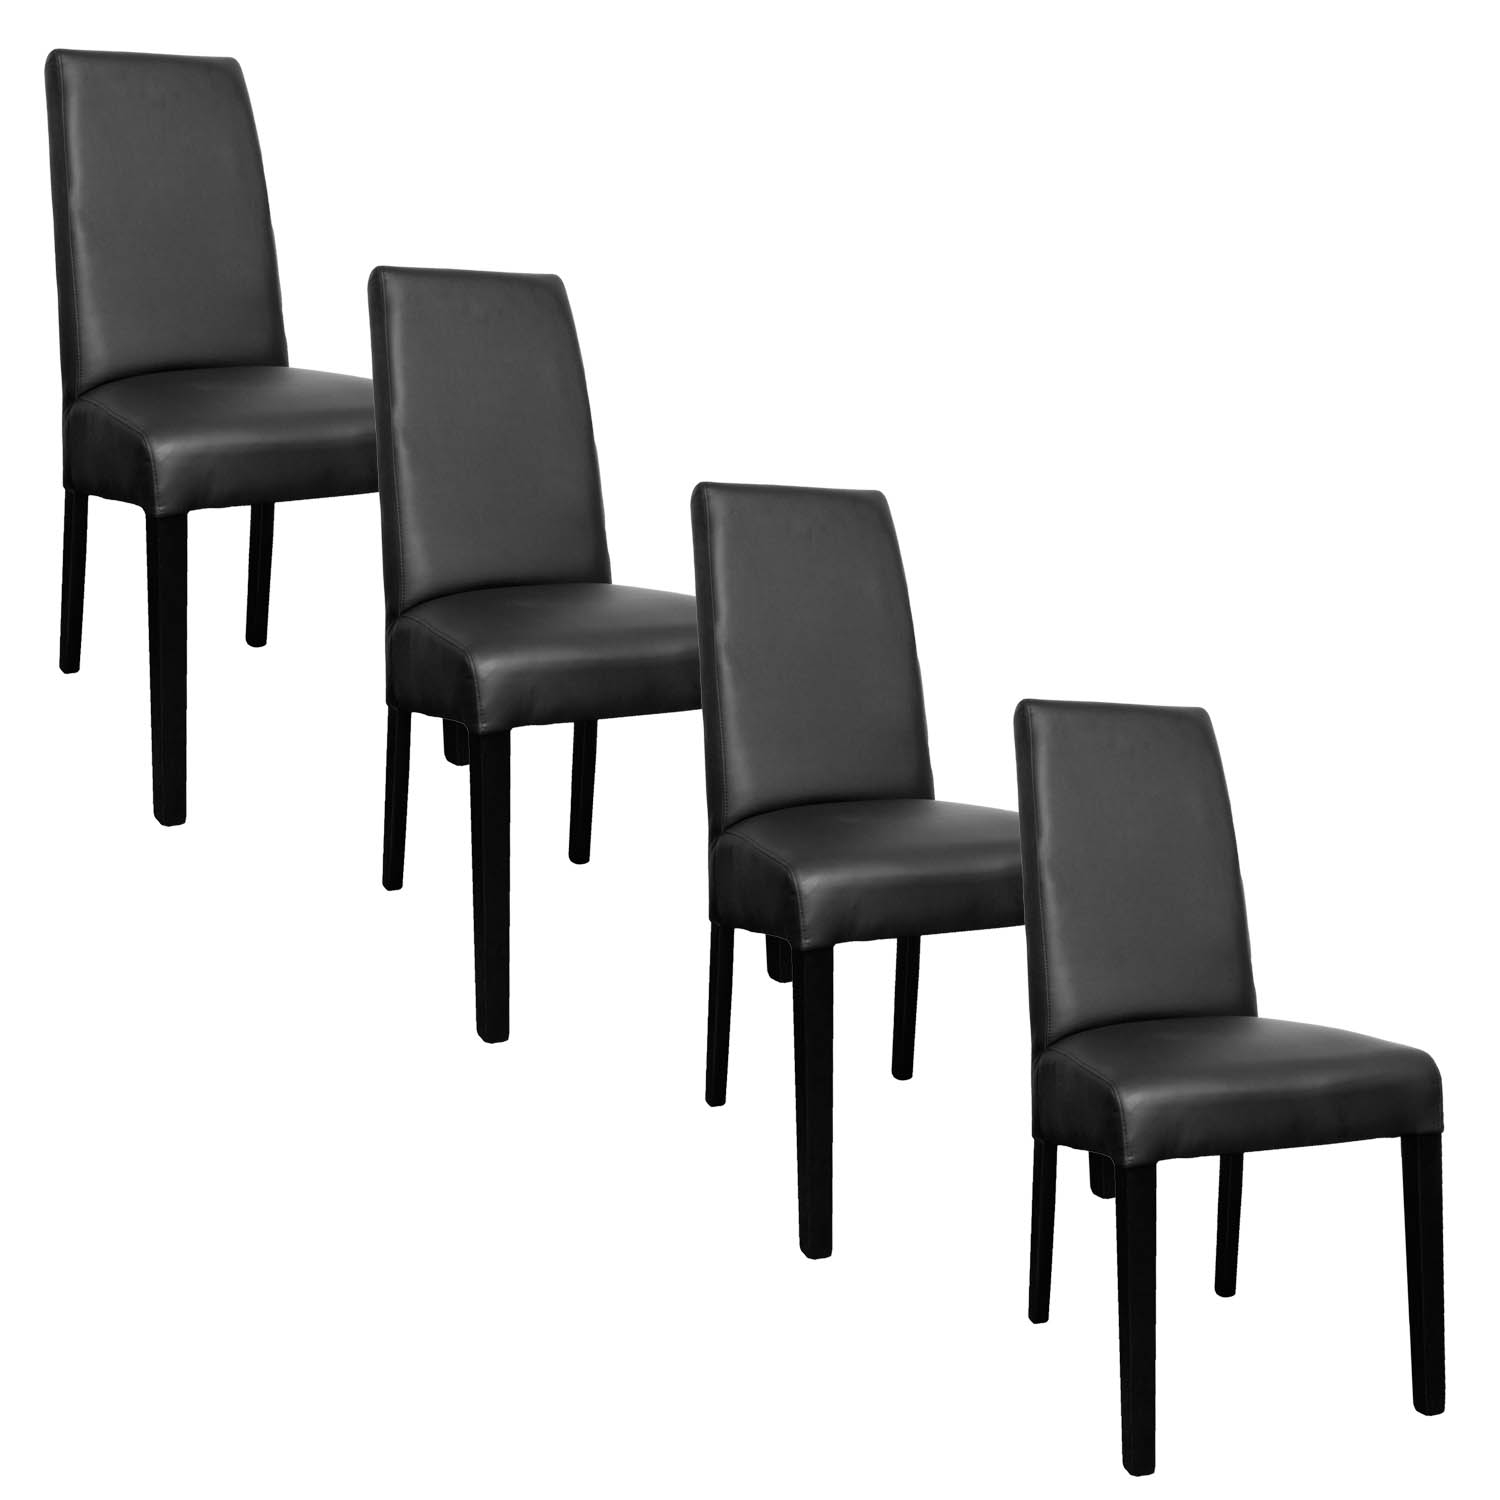 Deco in paris lot de 4 chaises noir muka muka noir x4 for Lot 4 chaises